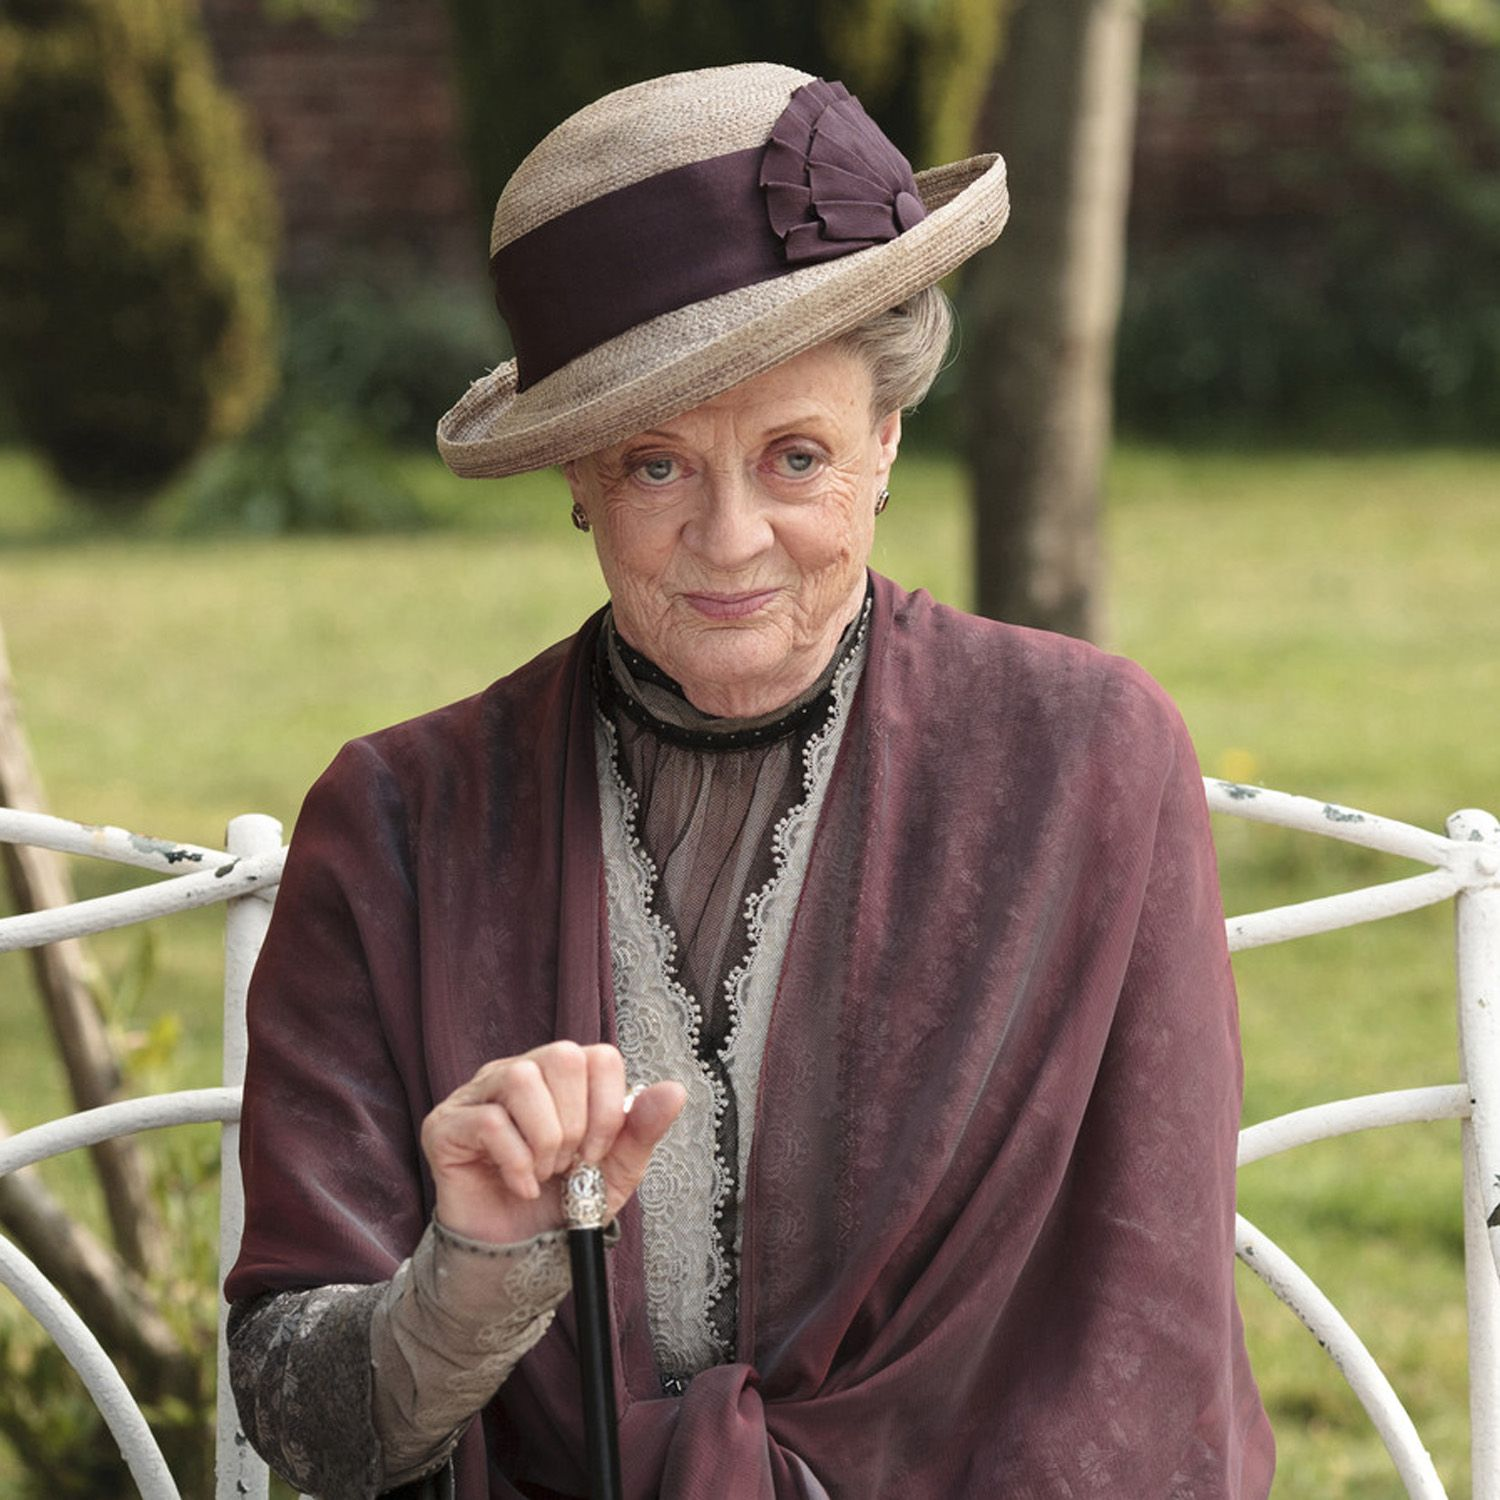 Dowager Countess Quotes | Downton Abbey Quotes Best Dowager Countess Quotes From Downton Abbey